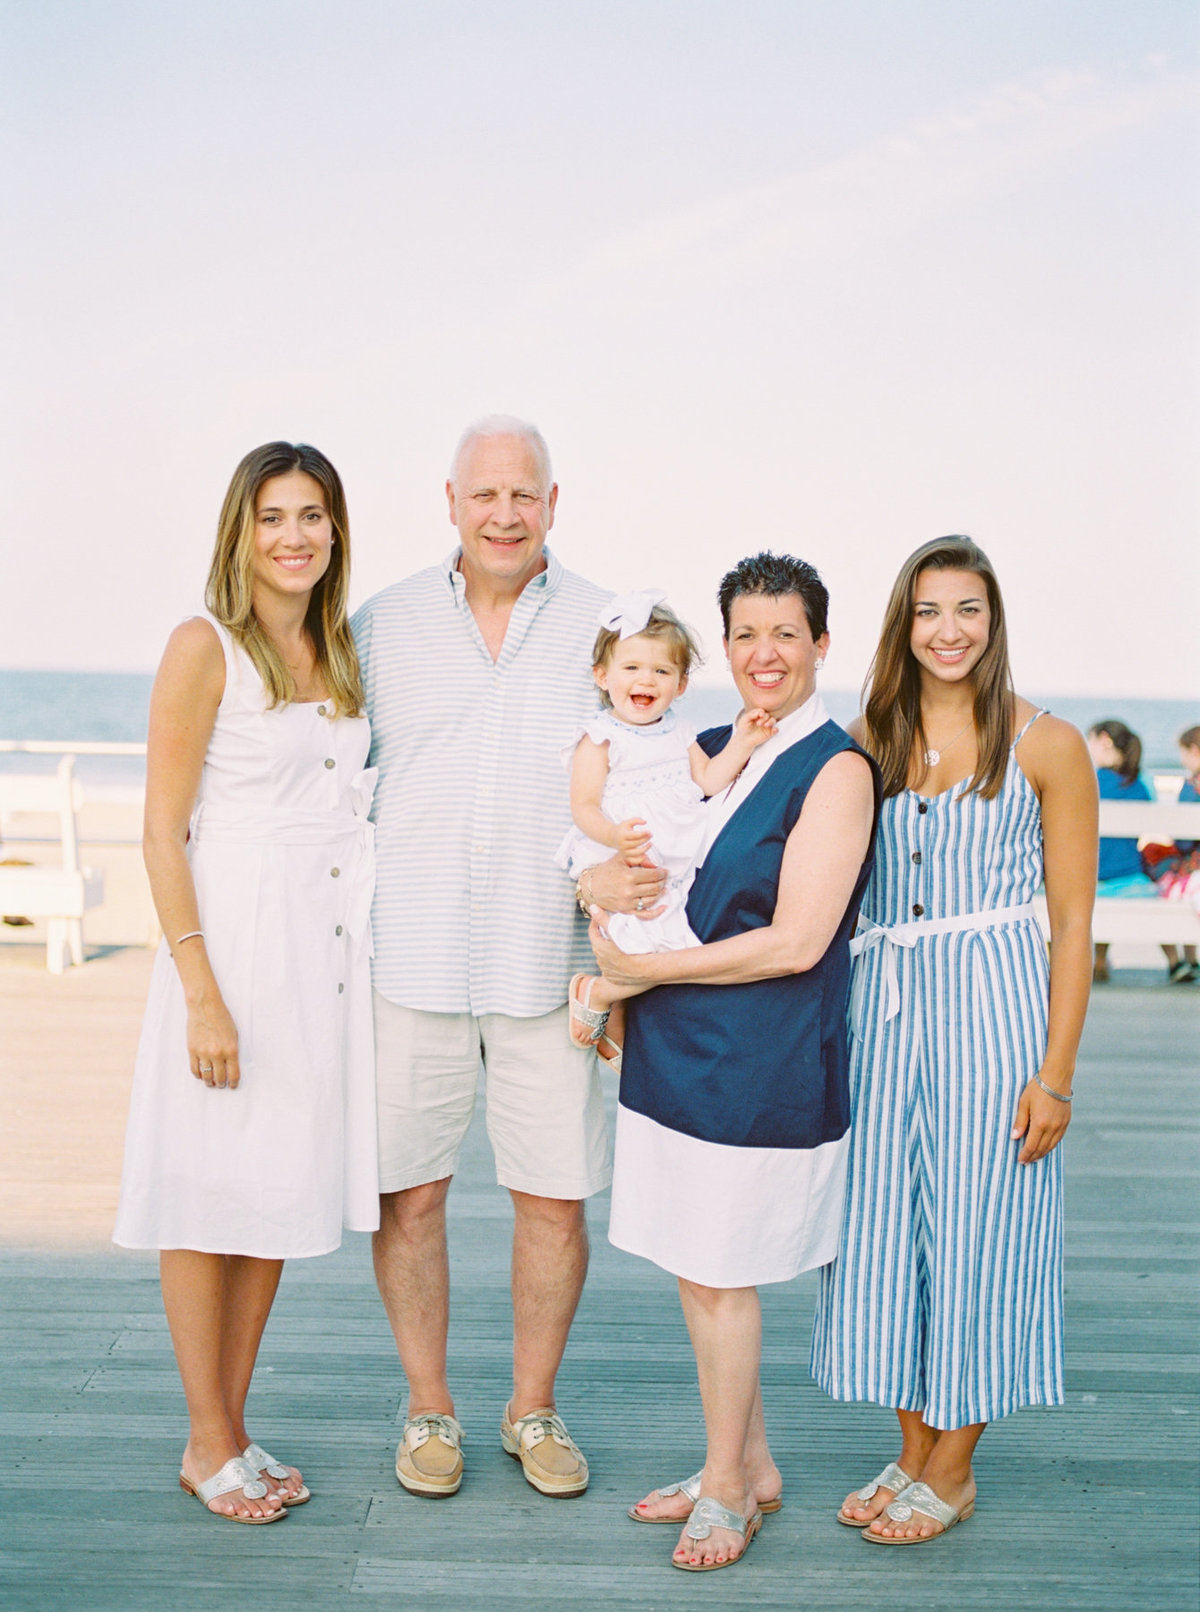 Michelle Behre Photography NJ Fine Art Photographer Seaside Family Lifestyle Family Portrait Session in Avon-by-the-Sea-107